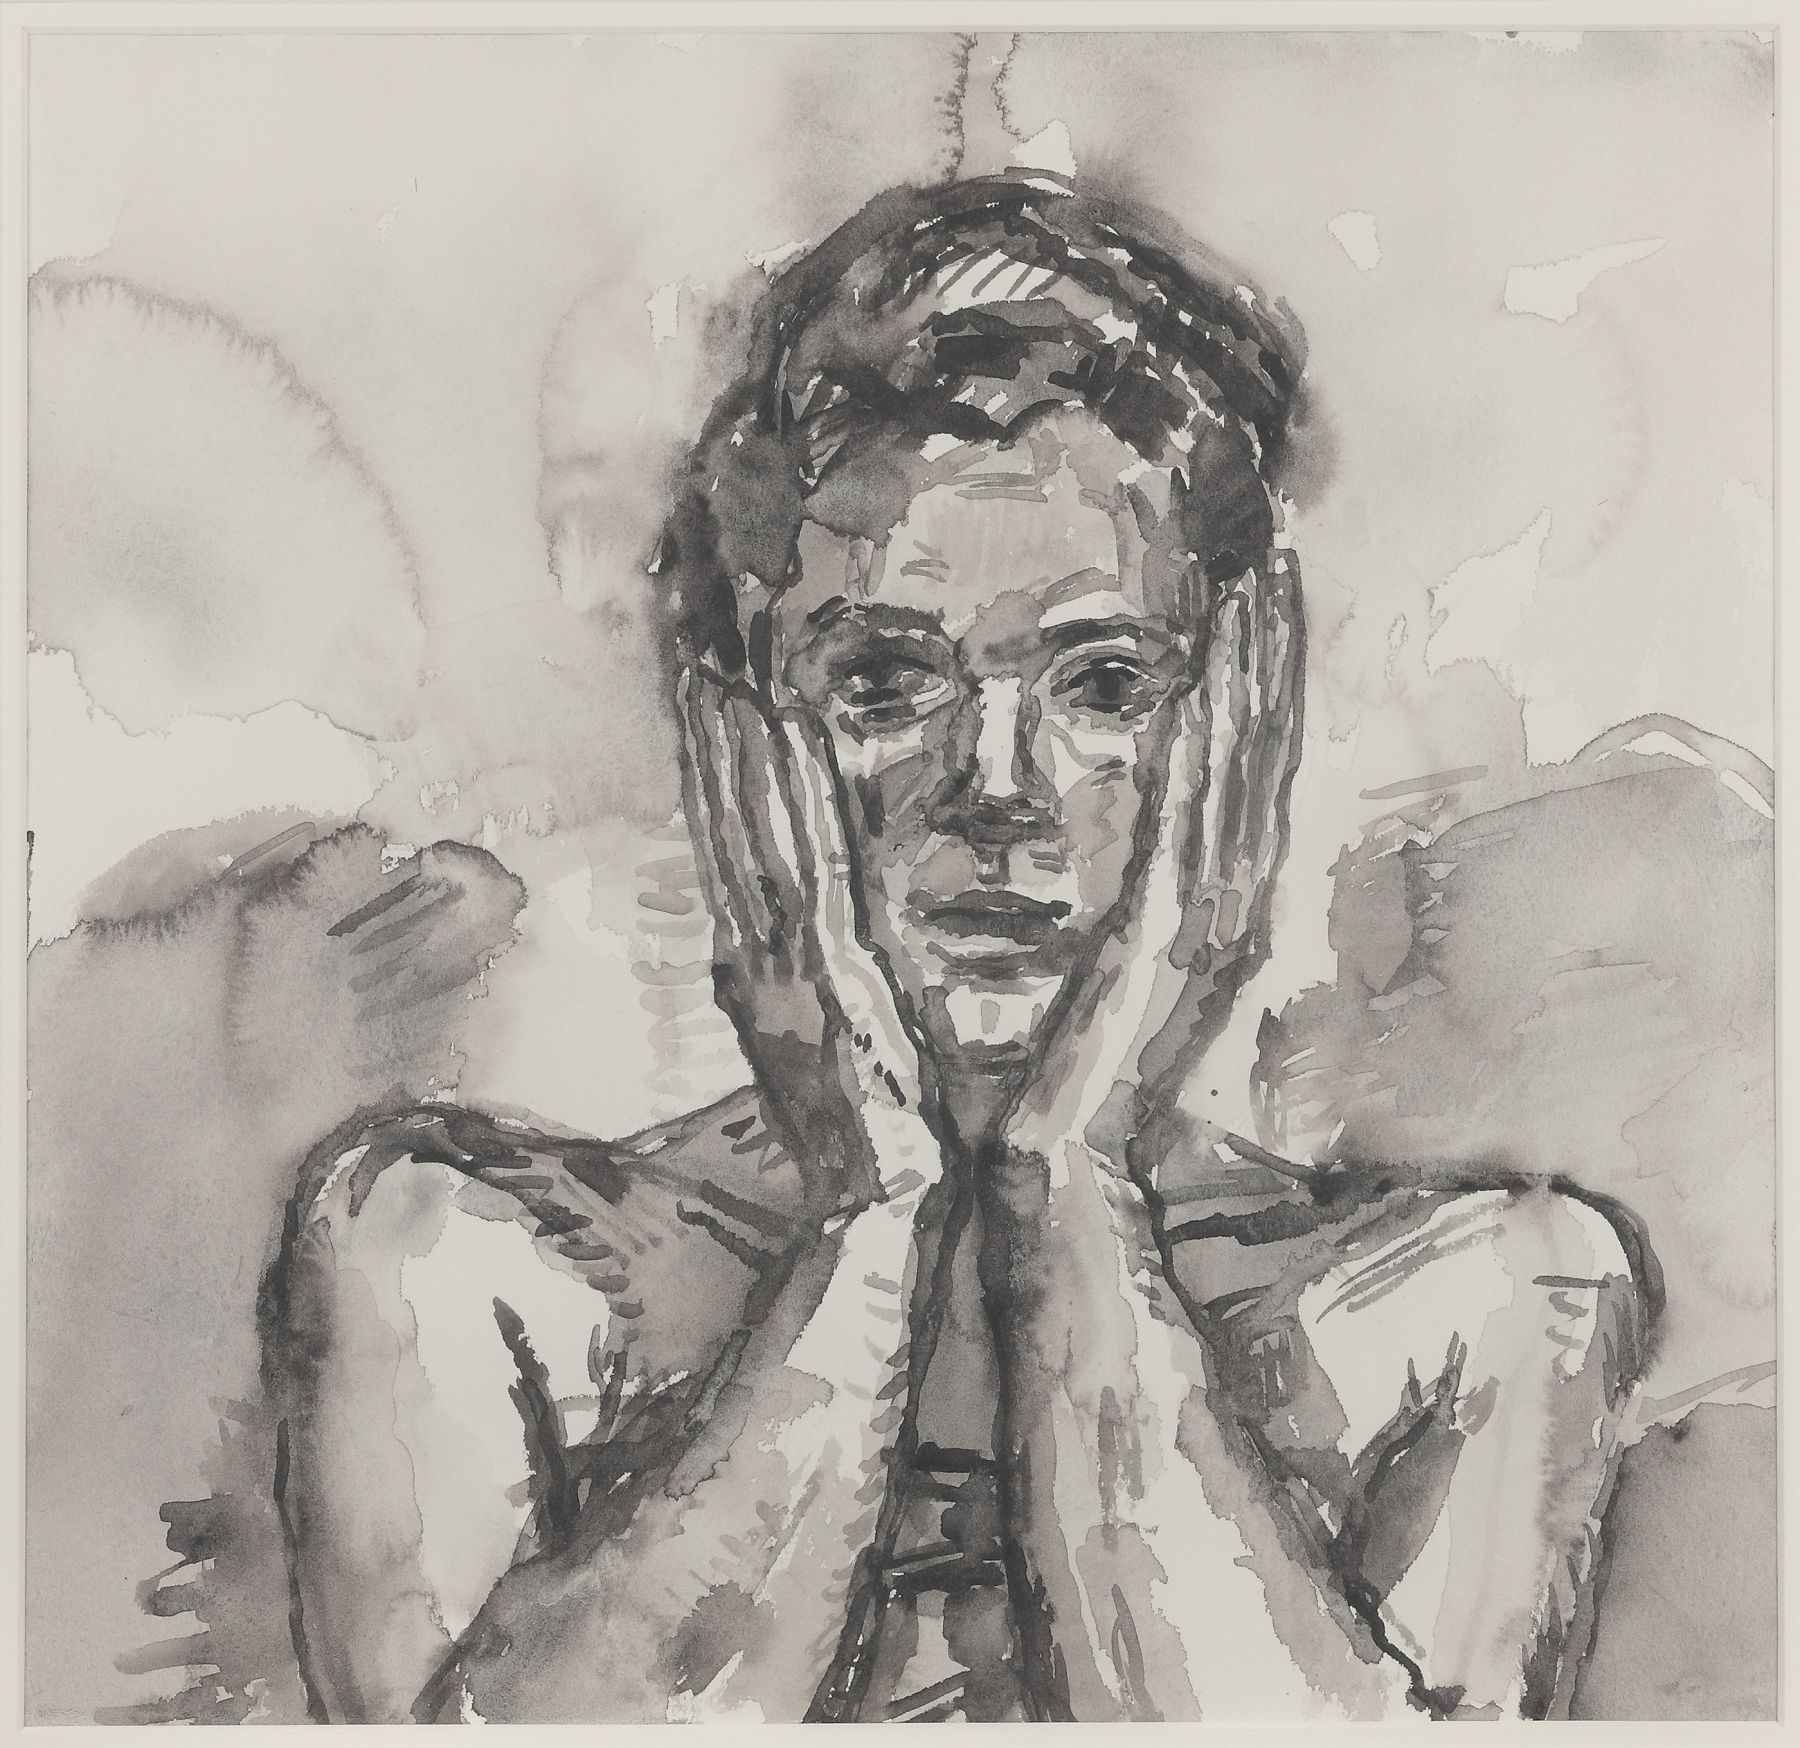 Graham Nickson  Head in Hands, 2001  Ink on paper 15 x 15 3/4 inches (38.1 x 40 cm)